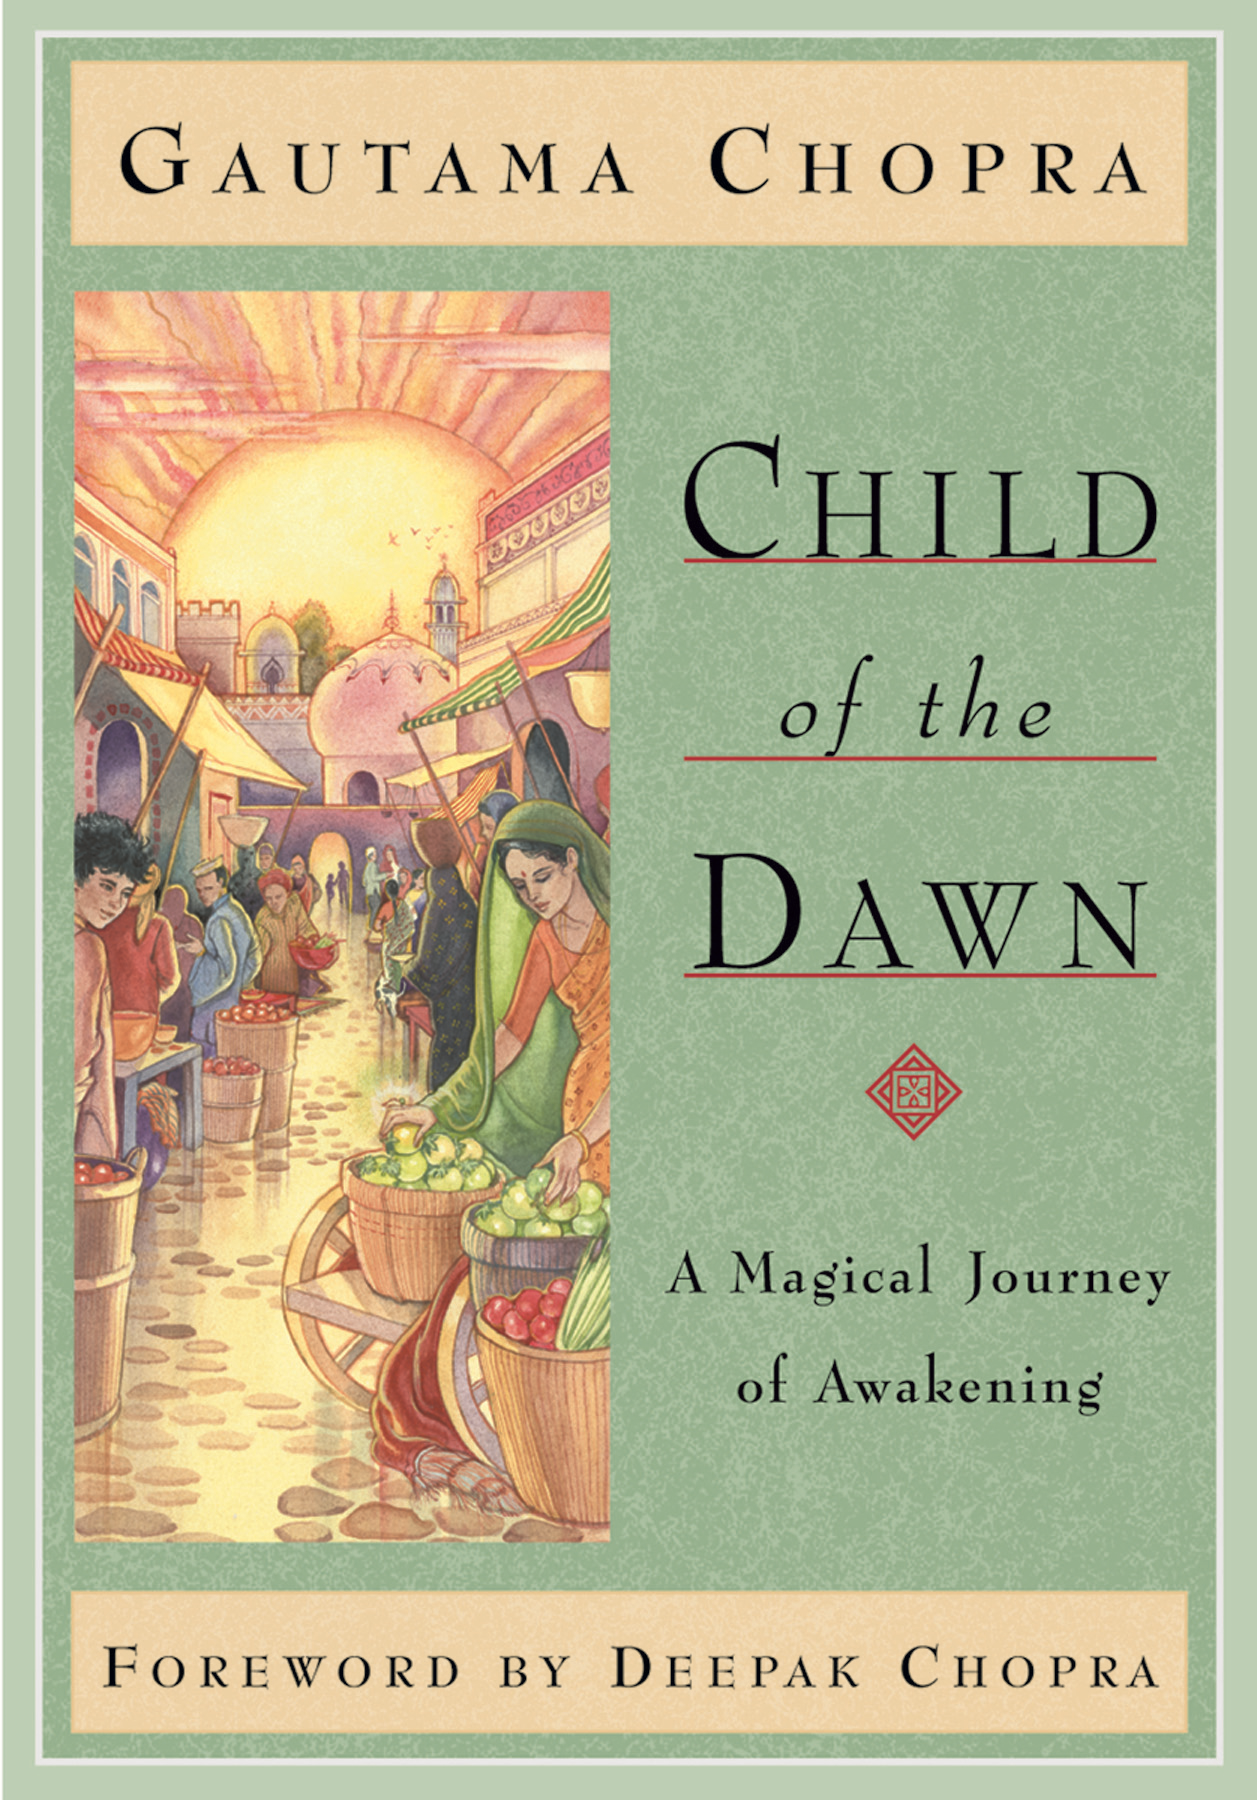 Child of the Dawn: A Magical Journey of Awakening By: Gautama Chopra, Foreword by Deepak Chopra